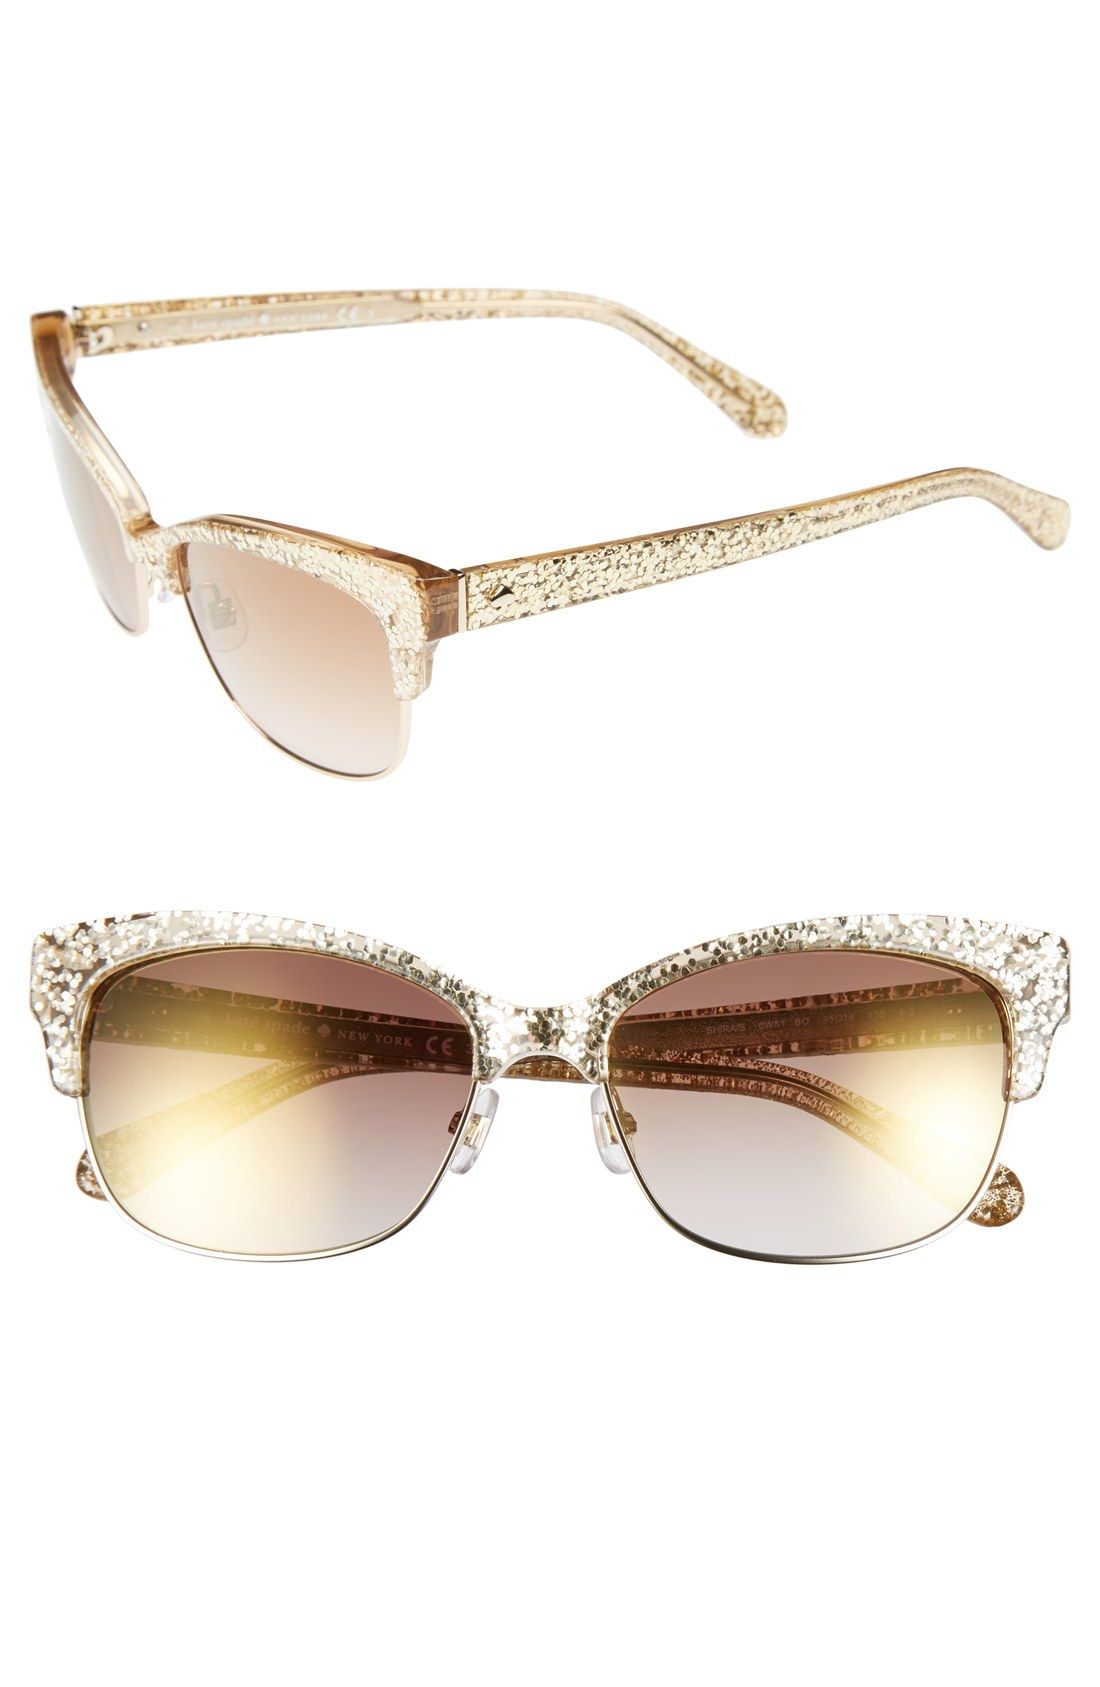 071ebdd36d0 Swooning over these Kate Spade gold glitter sunnies!